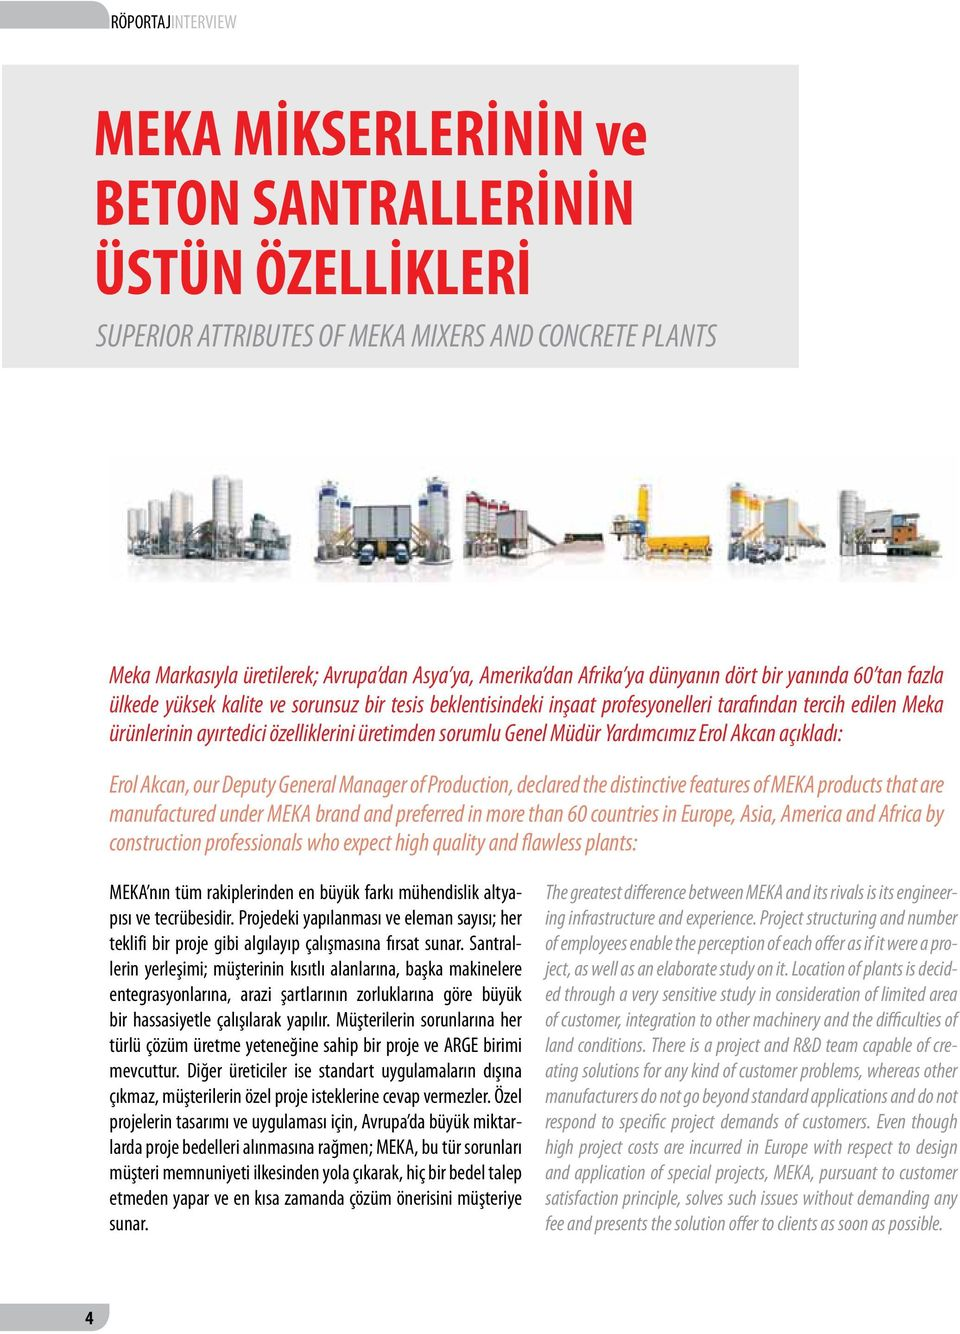 üretimden sorumlu Genel Müdür Yardımcımız Erol Akcan açıkladı: Erol Akcan, our Deputy General Manager of Production, declared the distinctive features of MEKA products that are manufactured under